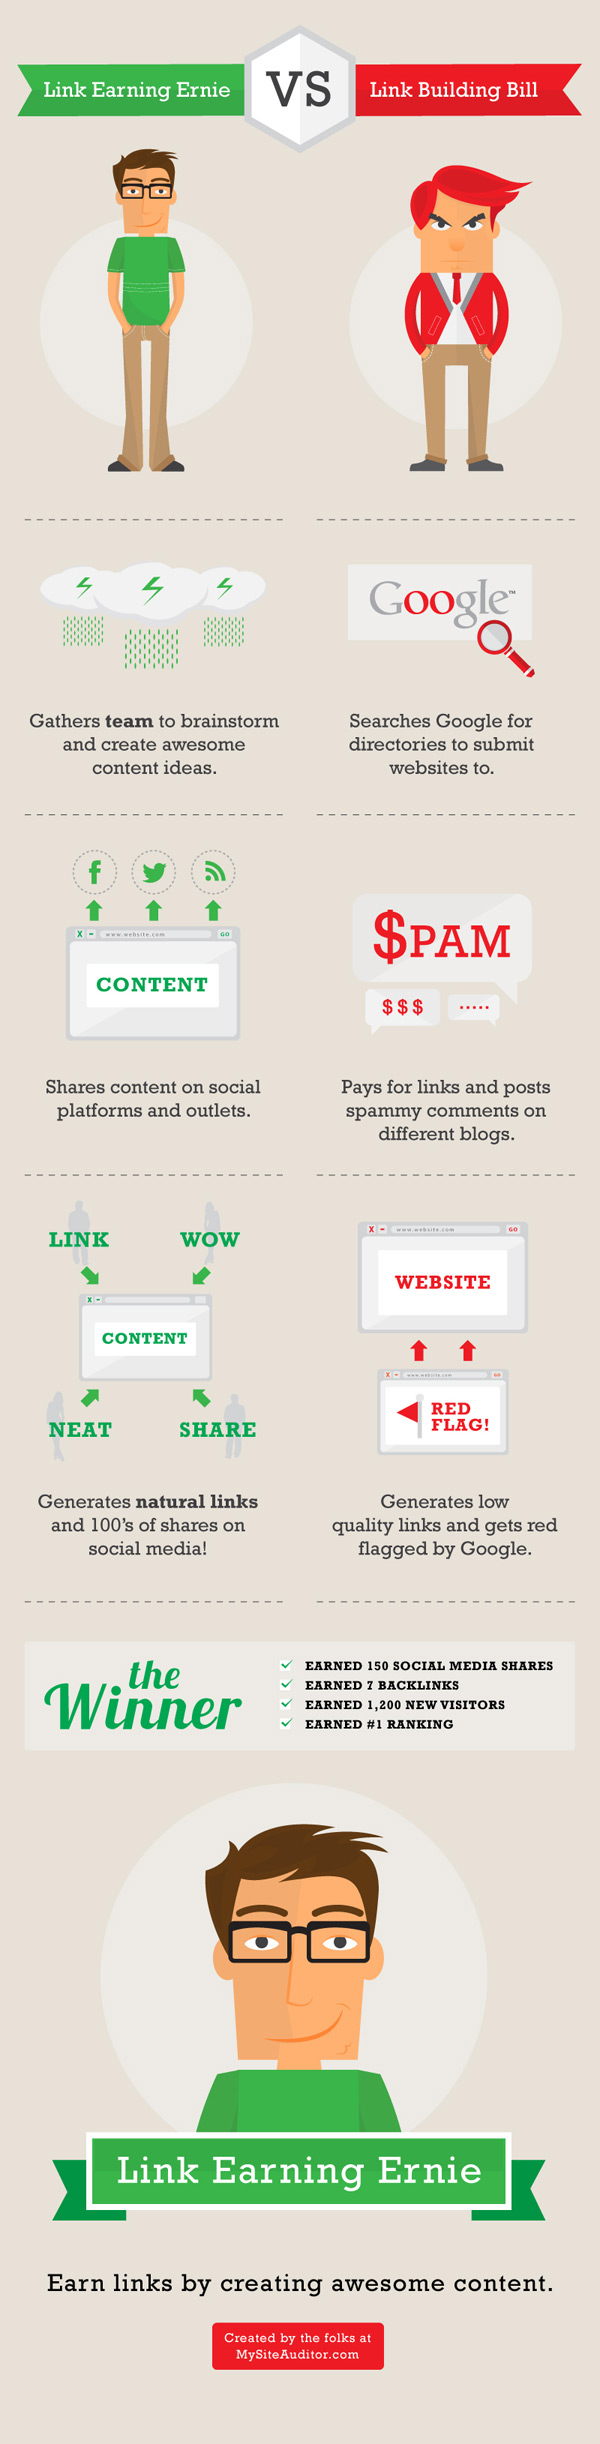 link-earning-vs-link-building